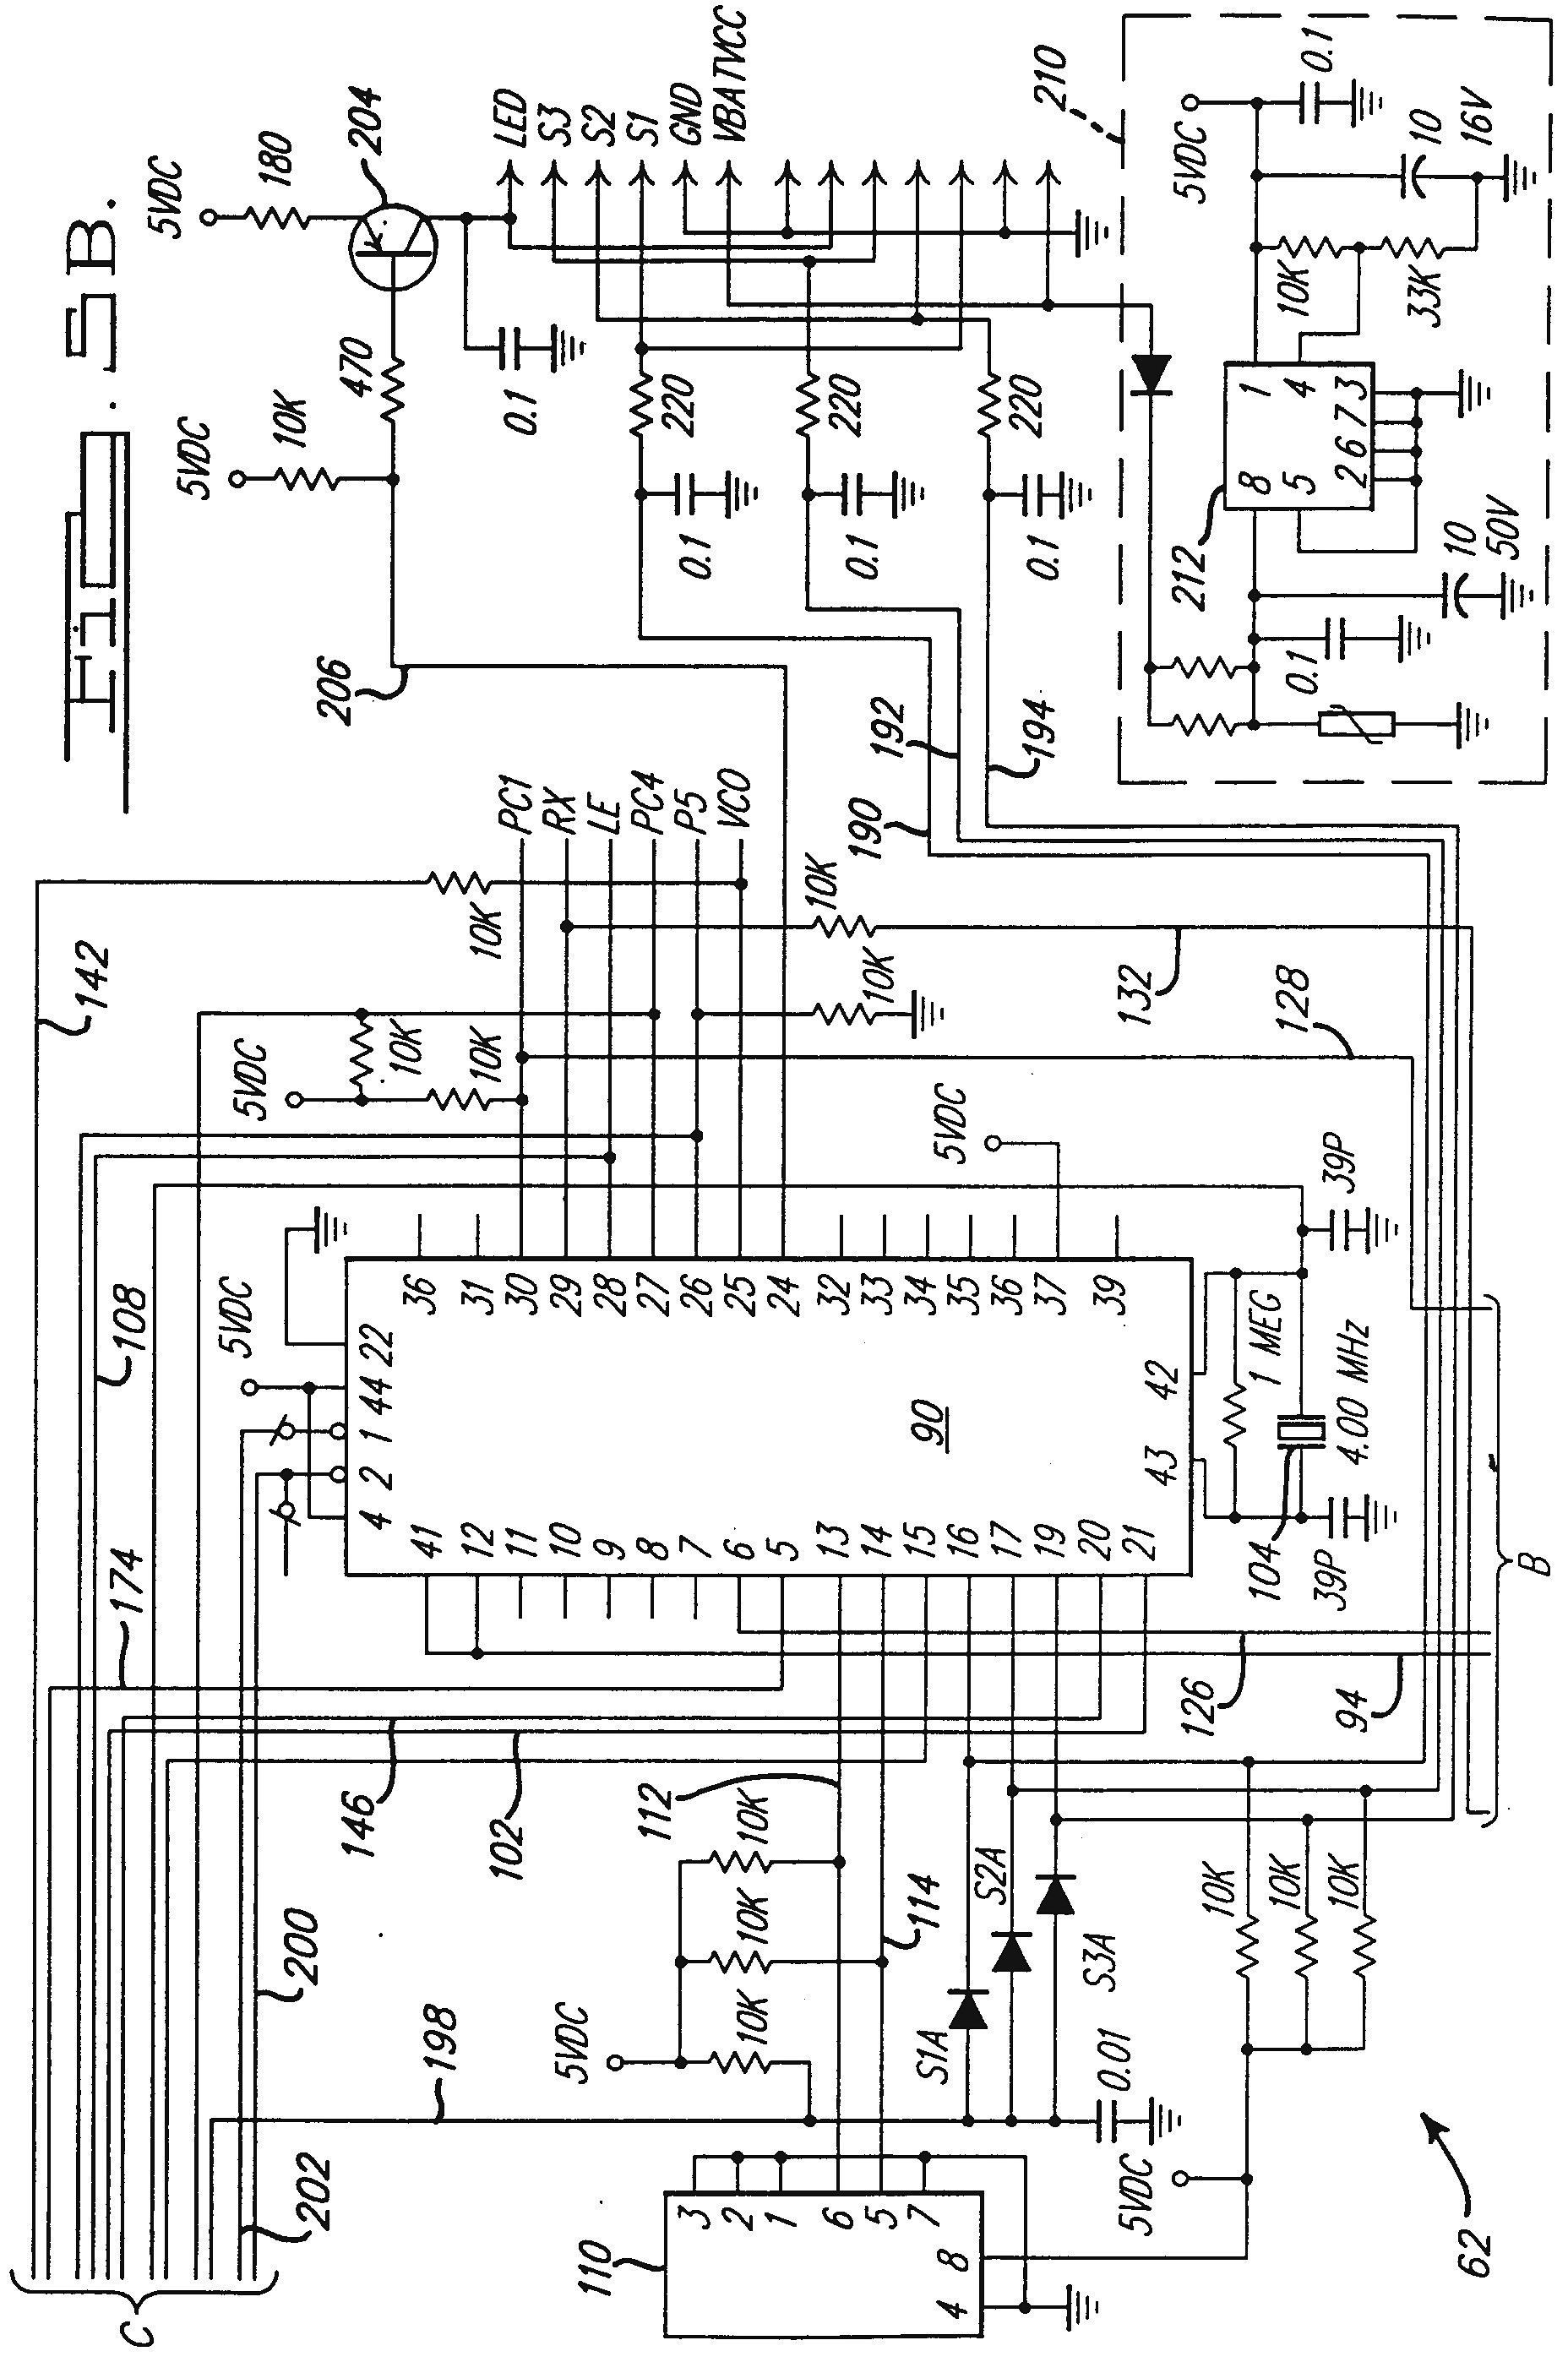 Genie Garage Door Sensor Wiring Diagram New Wiring Diagram Garage Door Opener Sensors Diagram Of Genie Garage Door Sensor Wiring Diagram Garage Door Opener Furthermore Genie Garage Door Opener